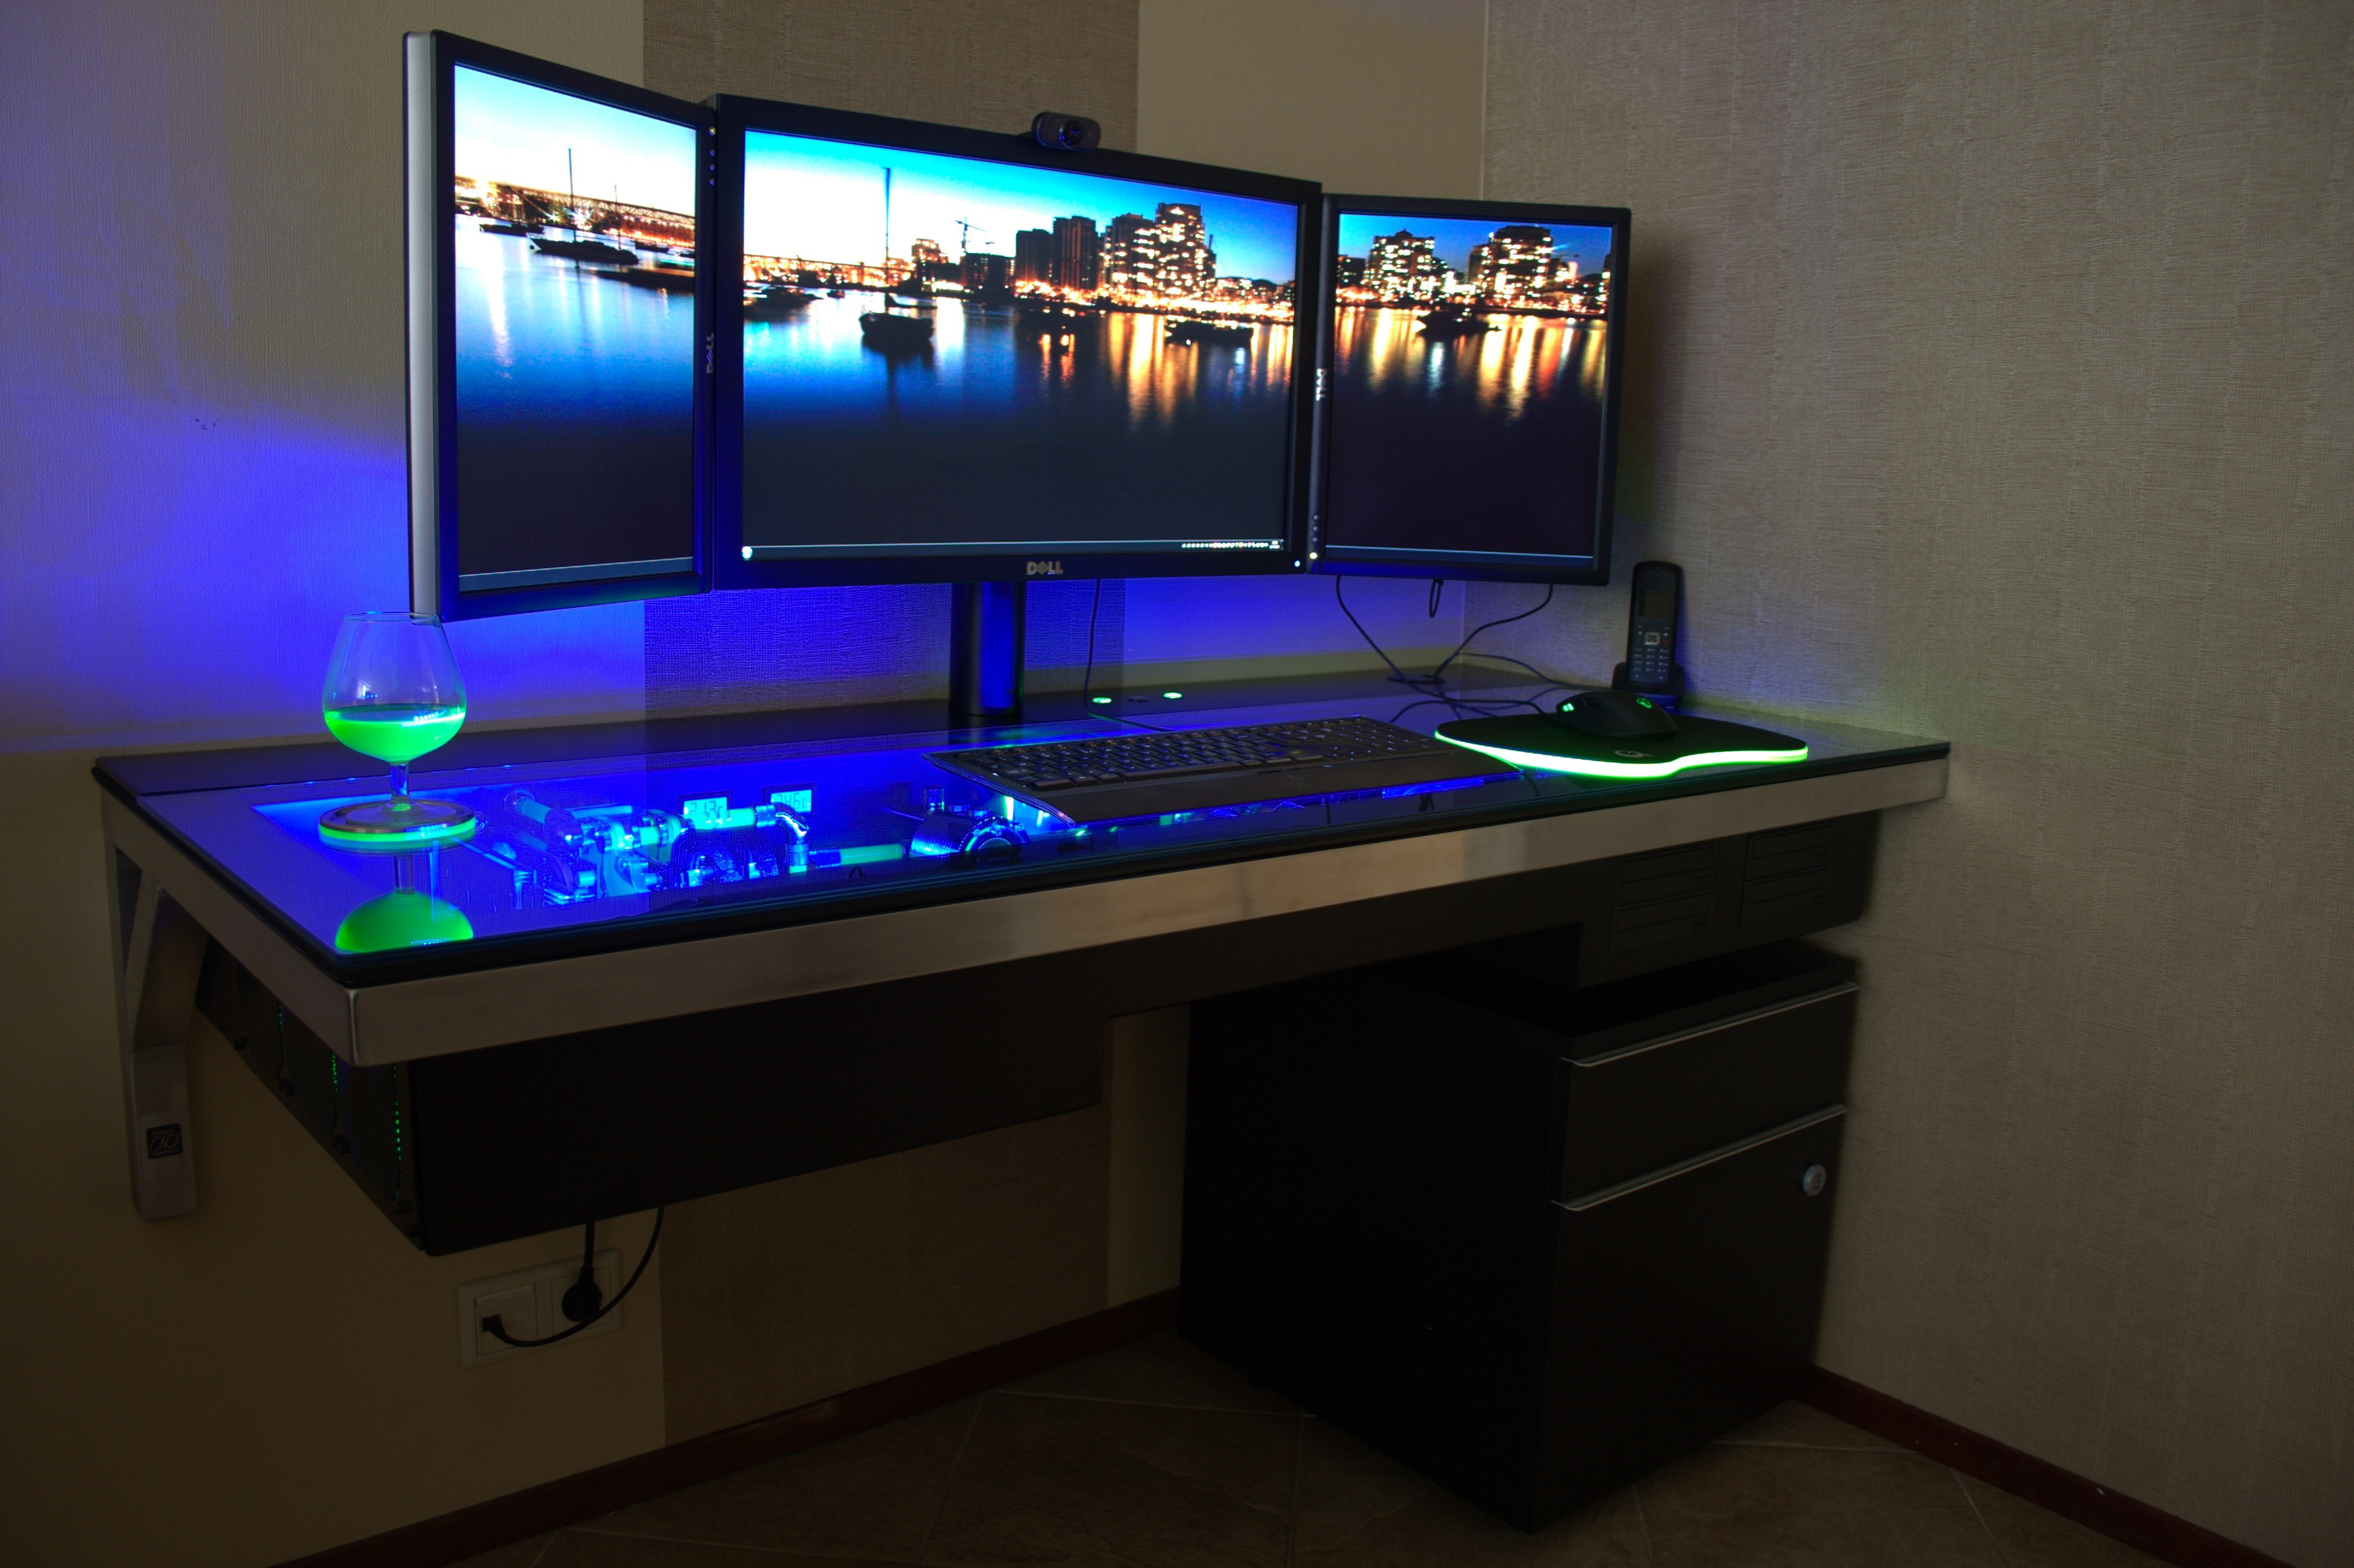 this is a table with a builtin pc case